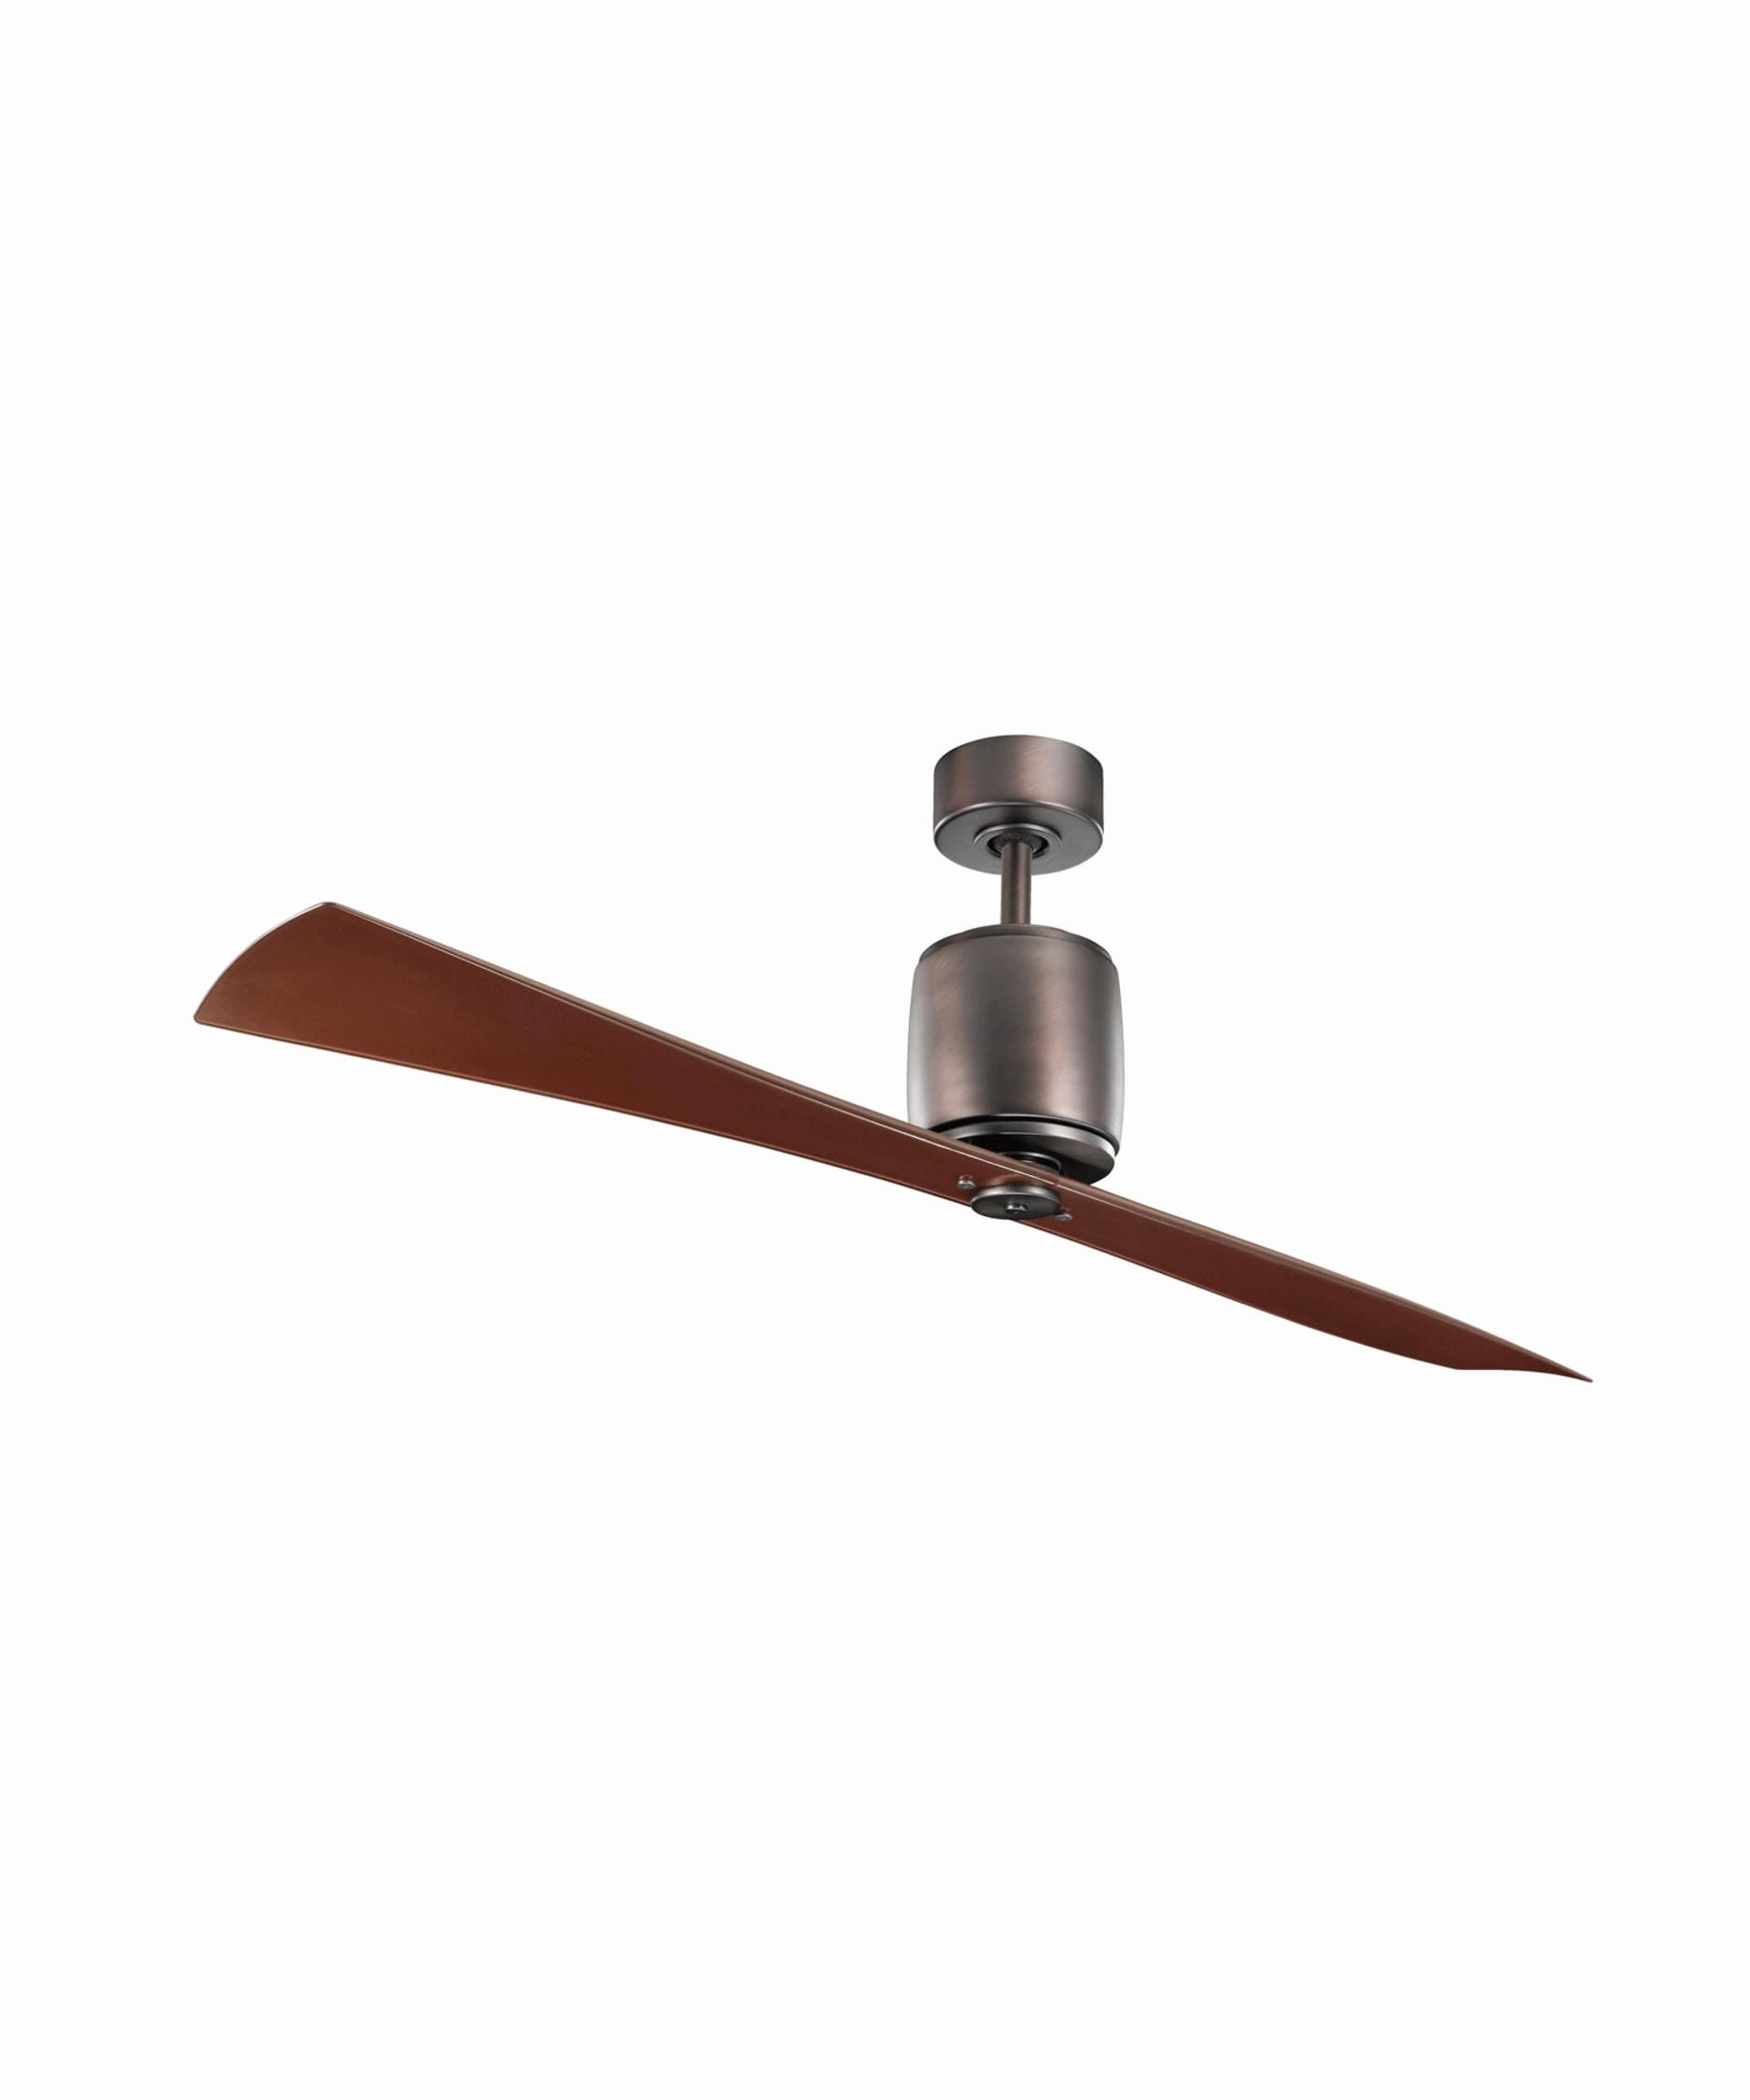 Outdoor Led Ceiling Fan Awesome Kichler Ferron 60 Inch 2 Blade With Regard To Recent Kichler Outdoor Ceiling Fans With Lights (View 16 of 20)